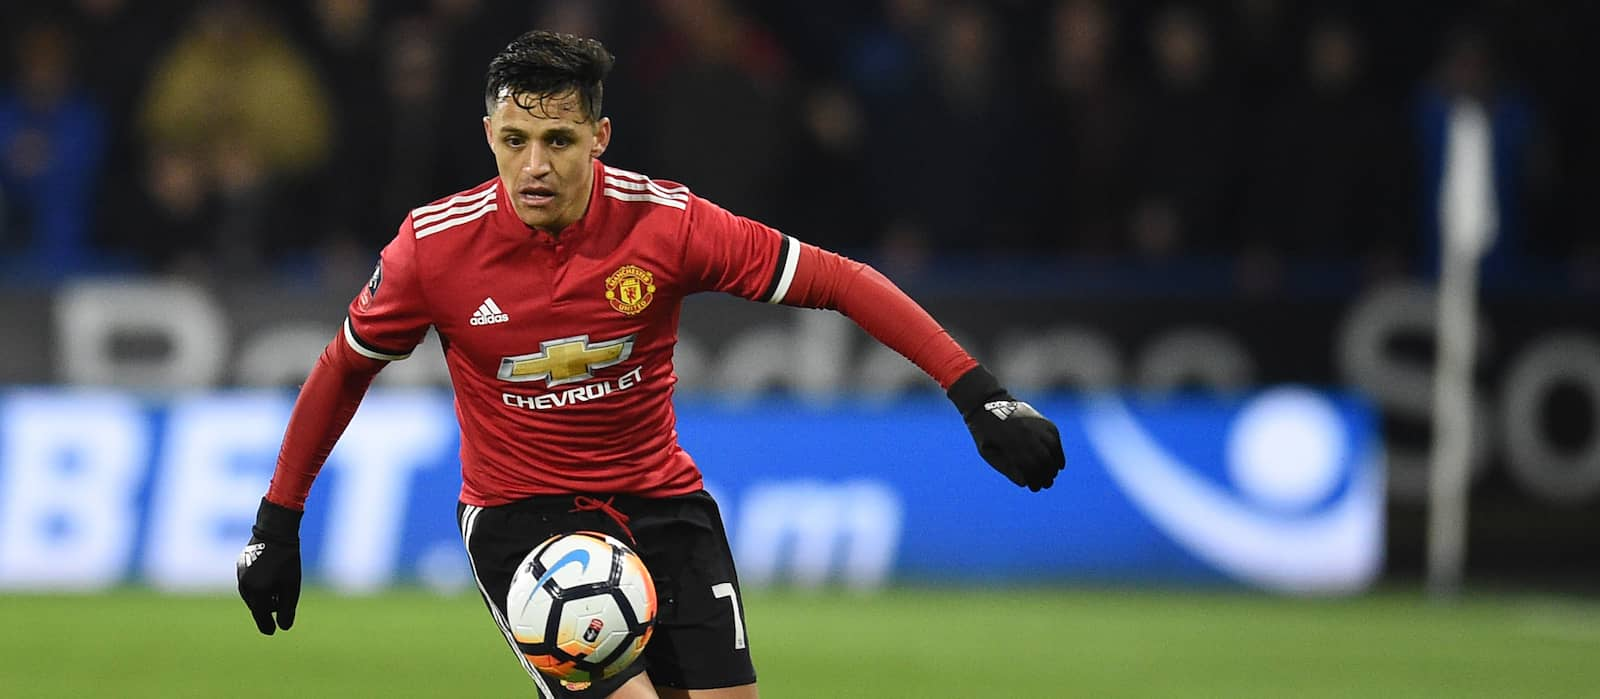 Sanchez i expected myself to perform better at manchester united alexis sanchez i expected myself to perform better at manchester united stopboris Image collections